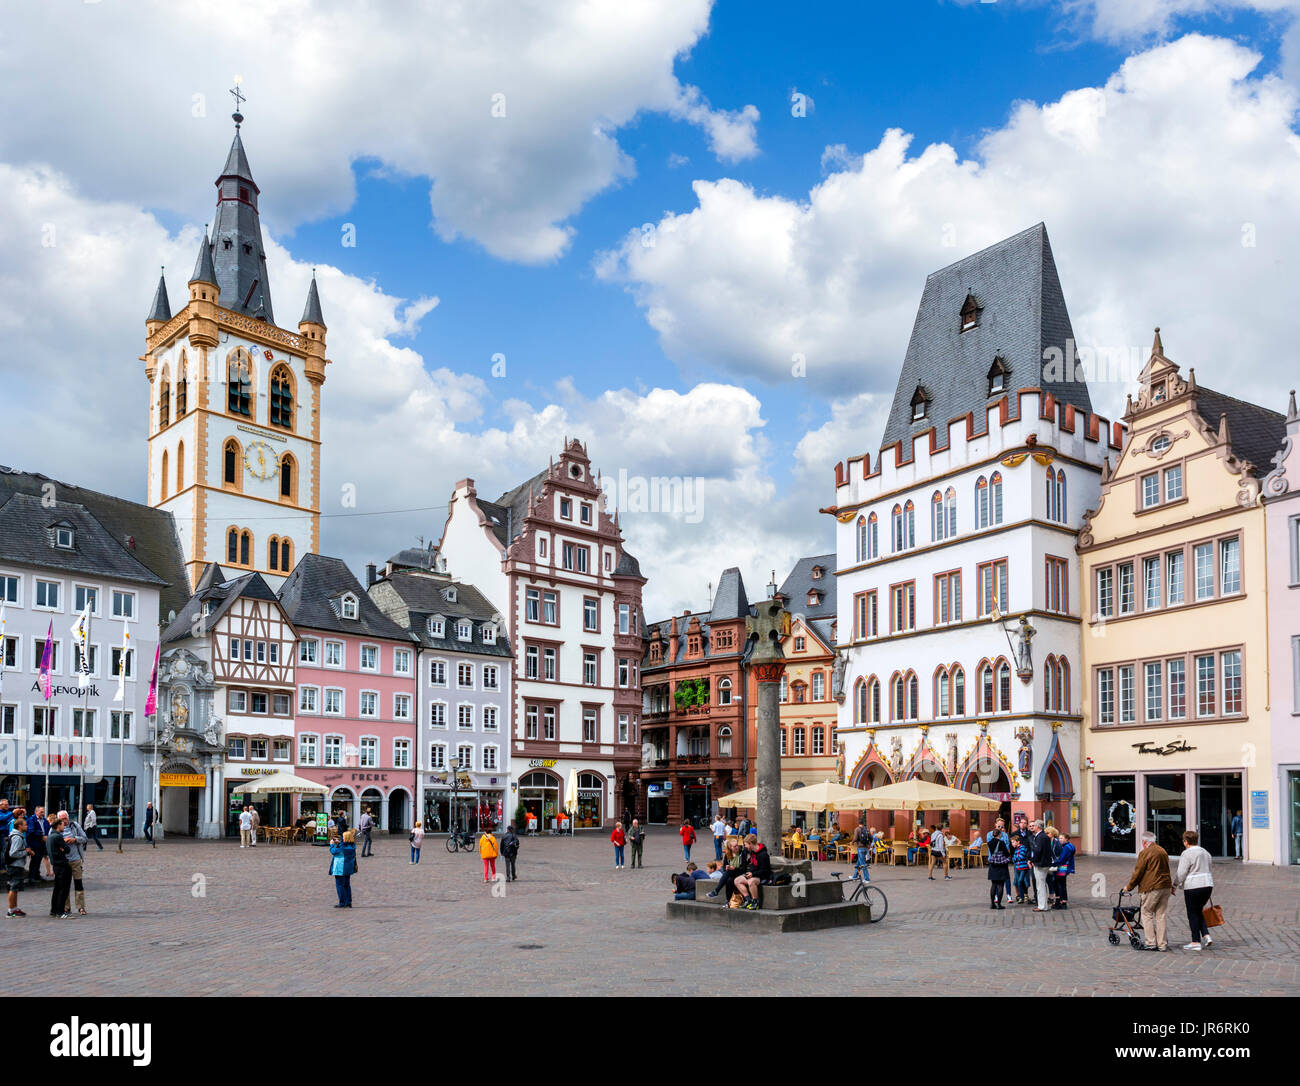 The Hauptmarkt in the old town, Trier, Rhineland-Palatinate, Germany Stock Photo